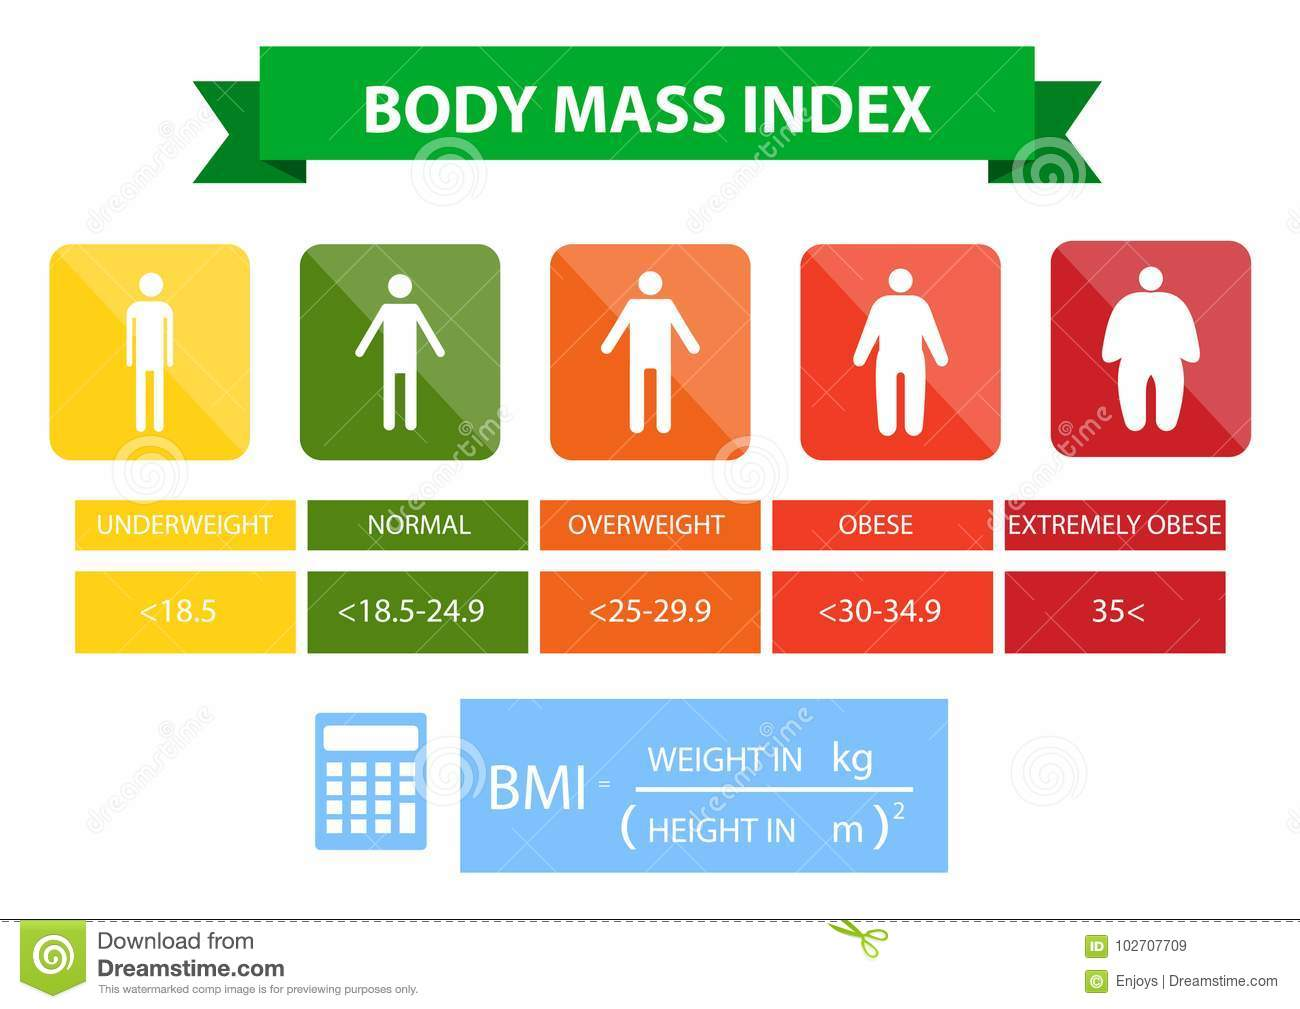 Body mass index illustration from underweight to extremely obese.